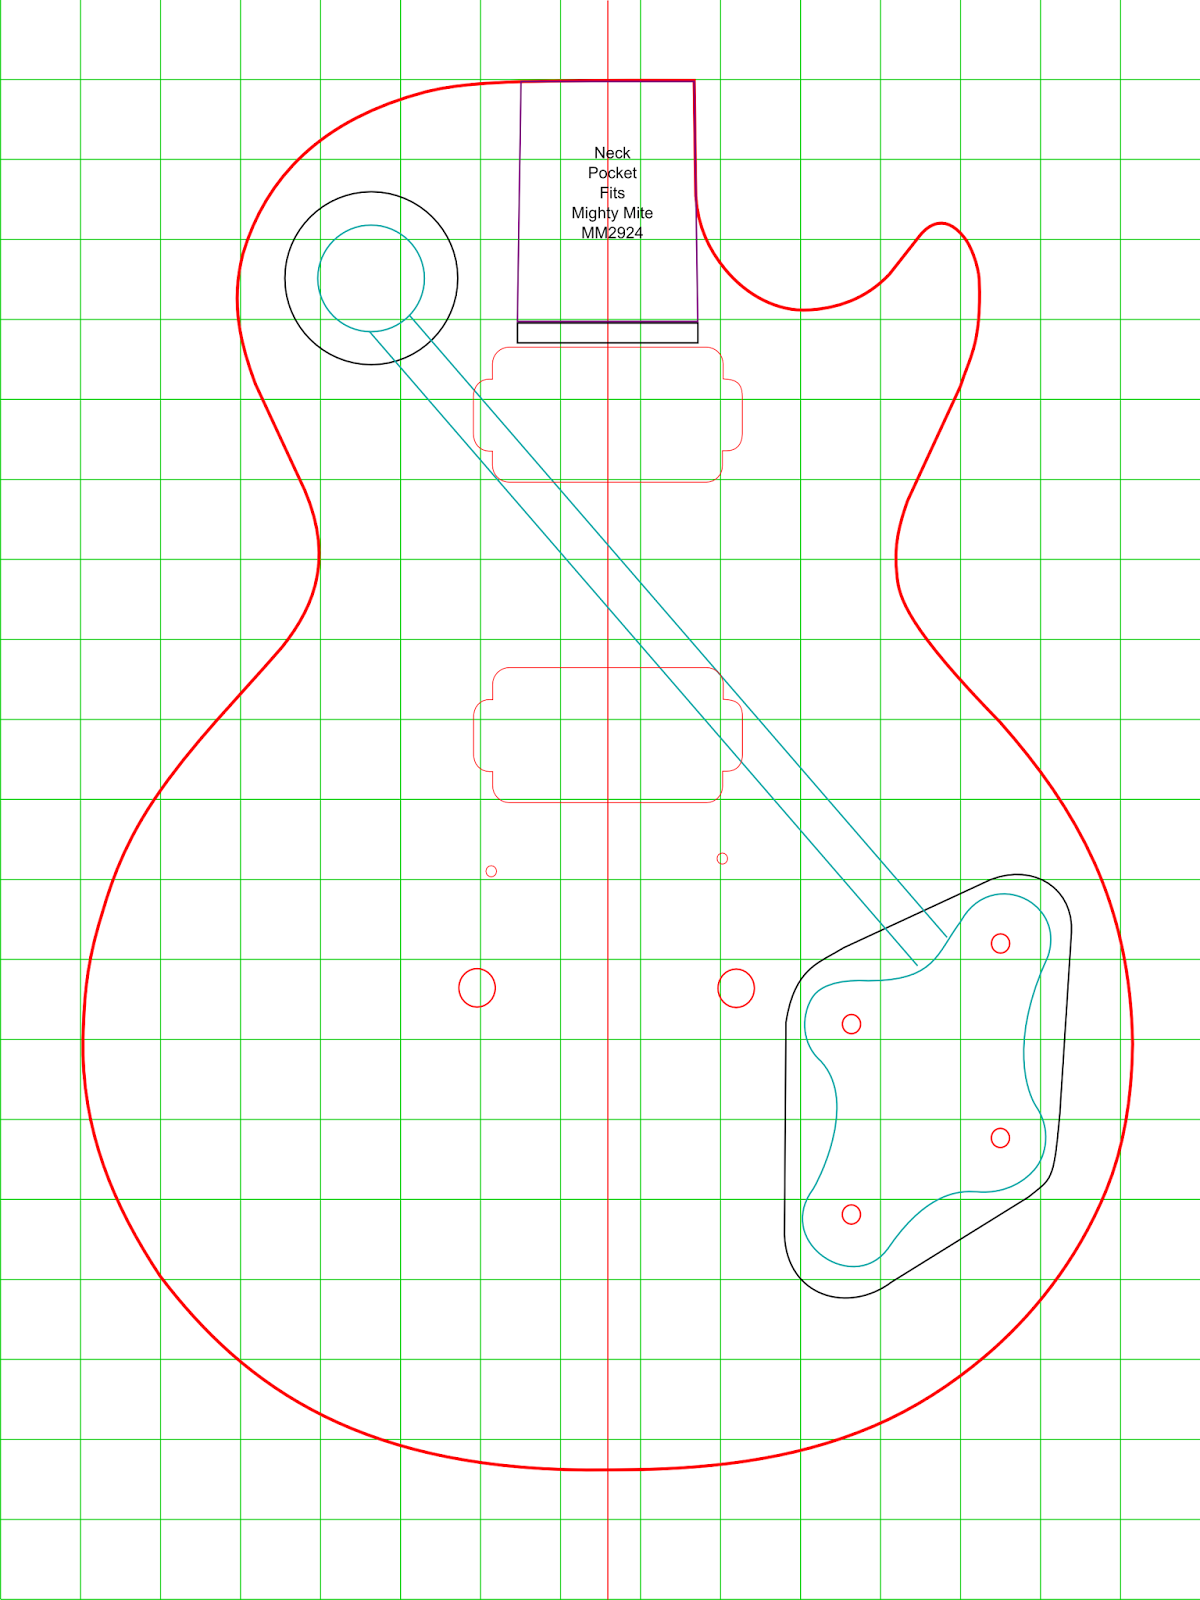 The Les Paul Templates I Have Found On Internet Been Very Helpful But None Of Them Proven To Be As Accurate Desired